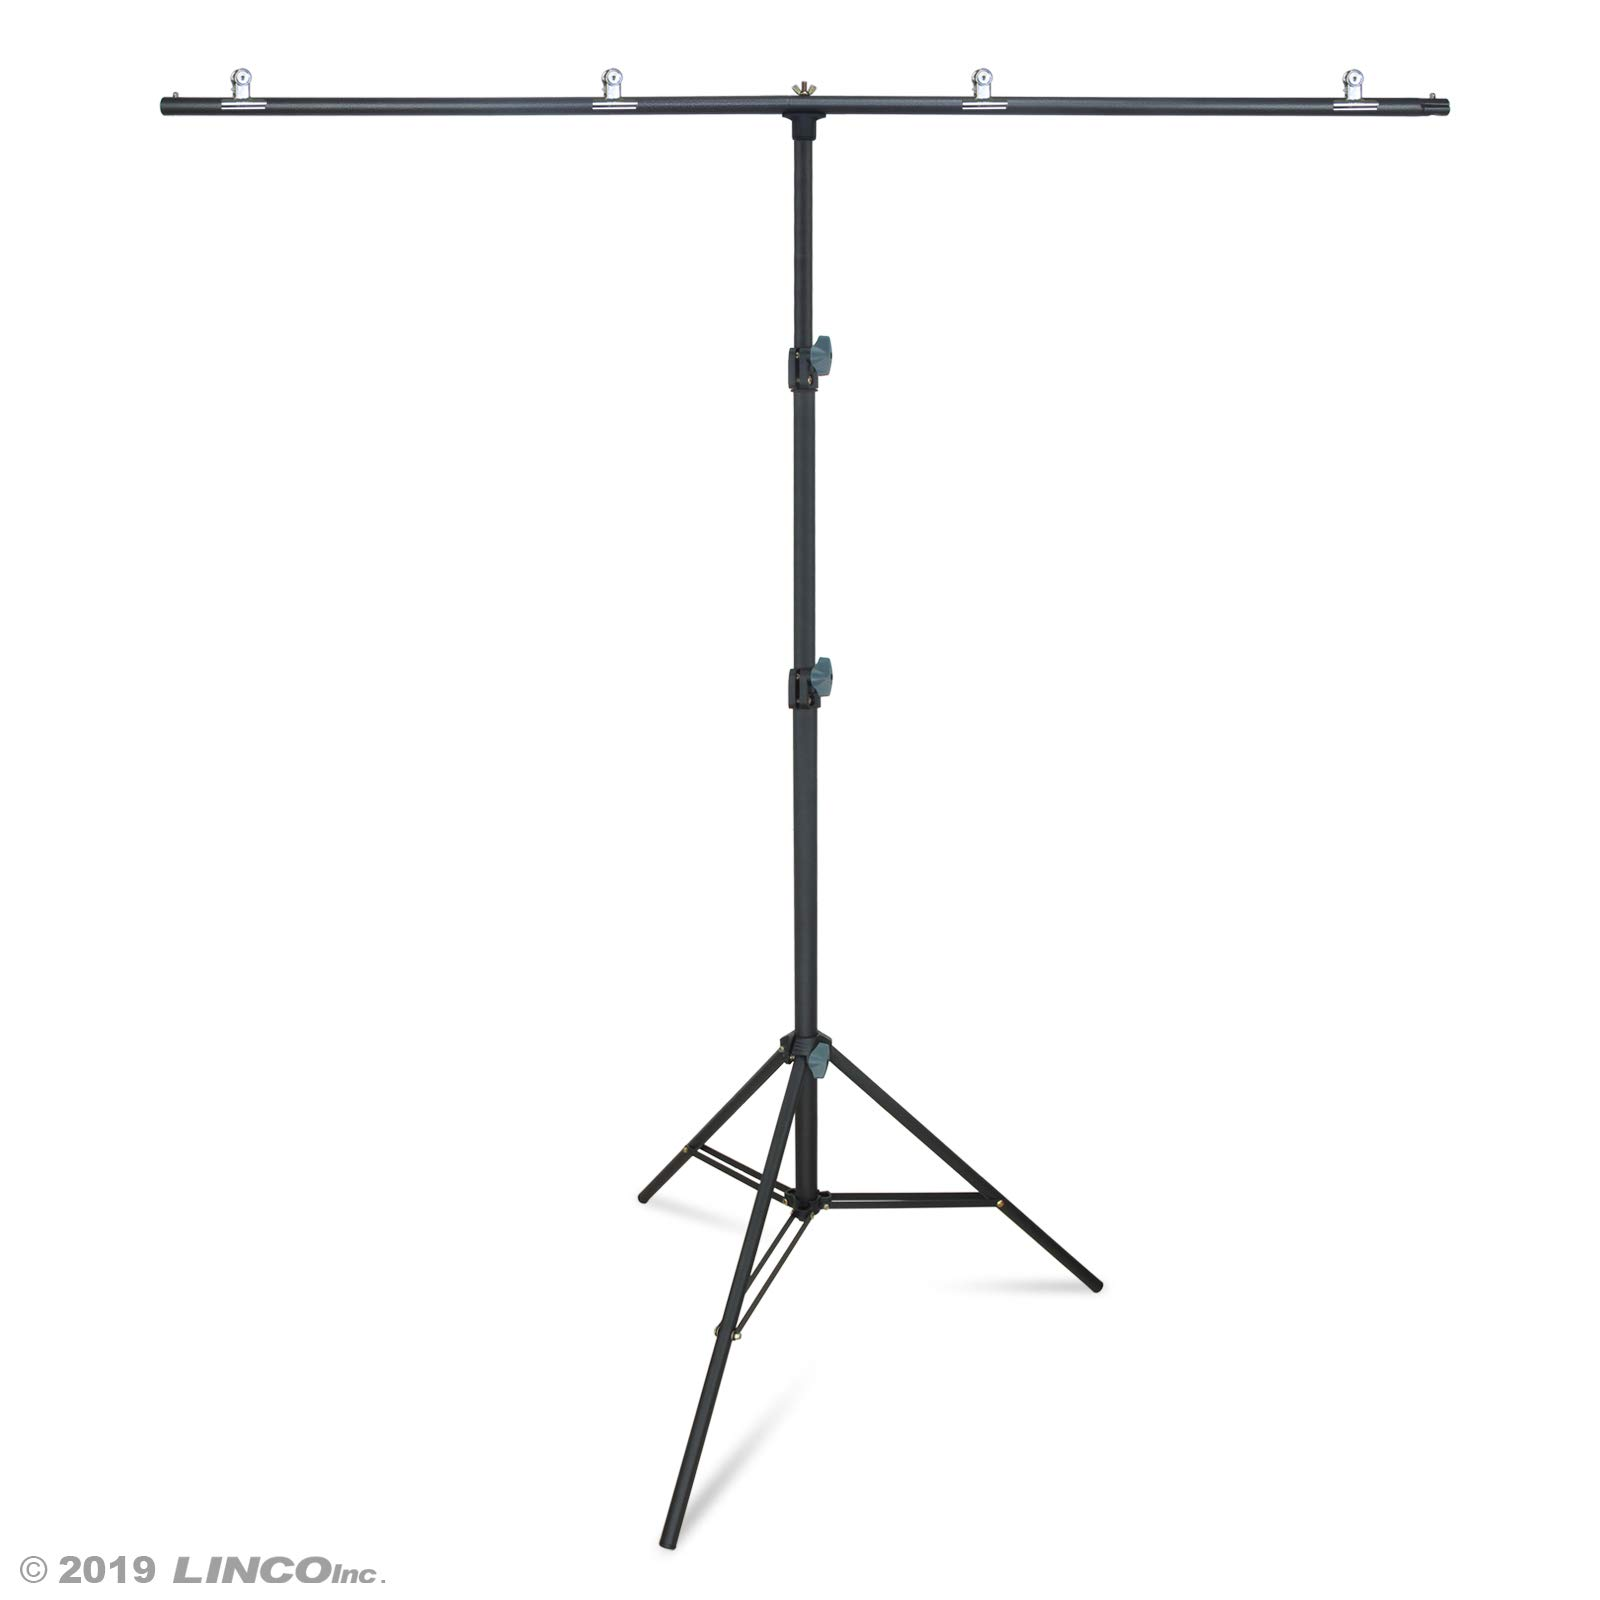 Linco Lincostore Zenith Portable T-Shape Background Backdrop Stand Kit 5x6.7ft - 5ft Wide (Fixed) and 6.7ft High (Adjustable)- Lightweight Only 4 Lbs Easy to Carry and Storage by Linco